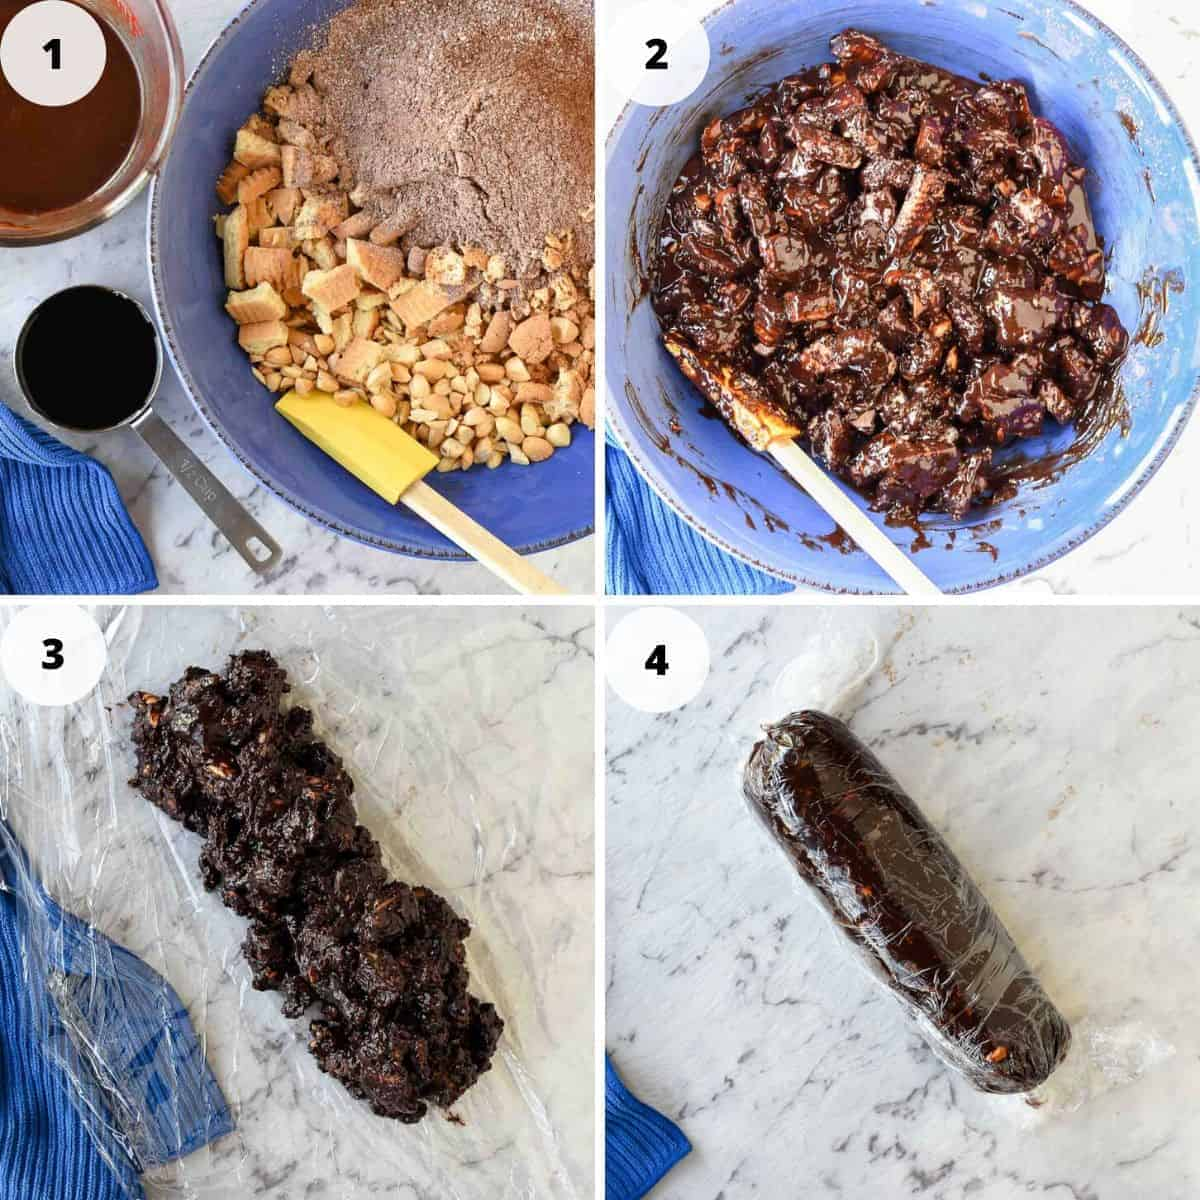 4 images of preparation of chocolate salami image 1 ingredients in a blue bowl, image 2 chocolate lumpy mixture image 3 oblong shape of lumpy chocolate mixture image 4 chocolate salami wrapped in plastic